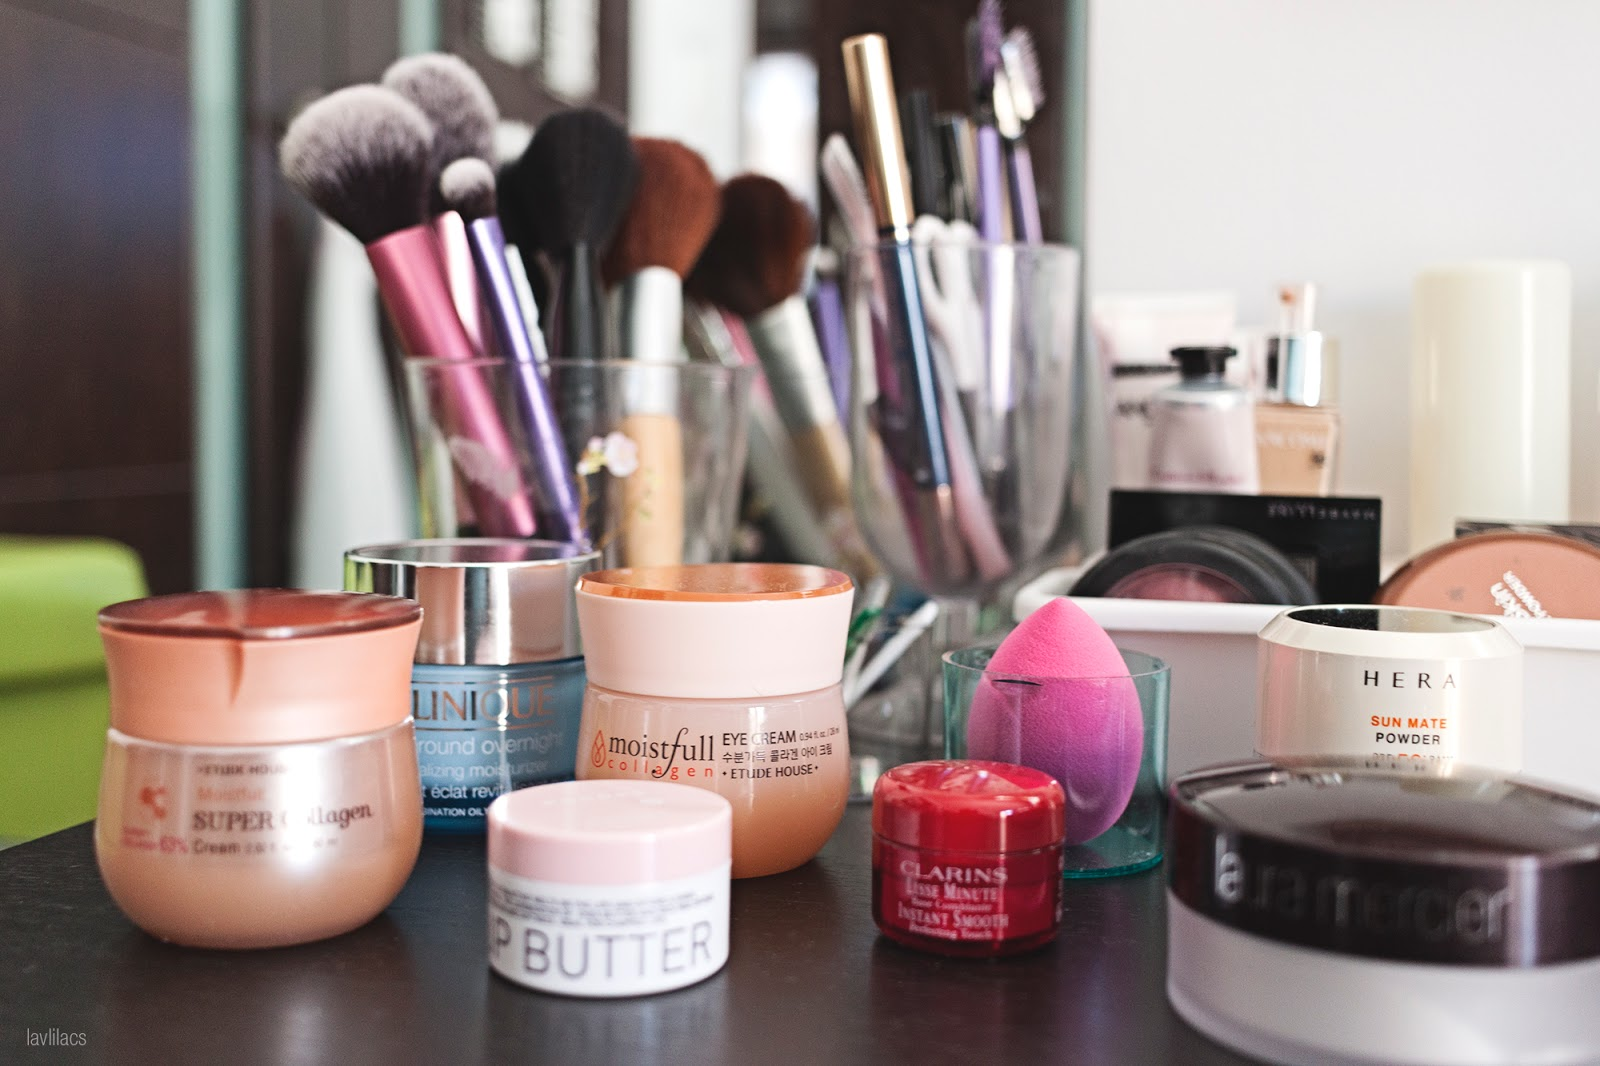 Daily jarred skincare products and makeup brushes on top of bedside table